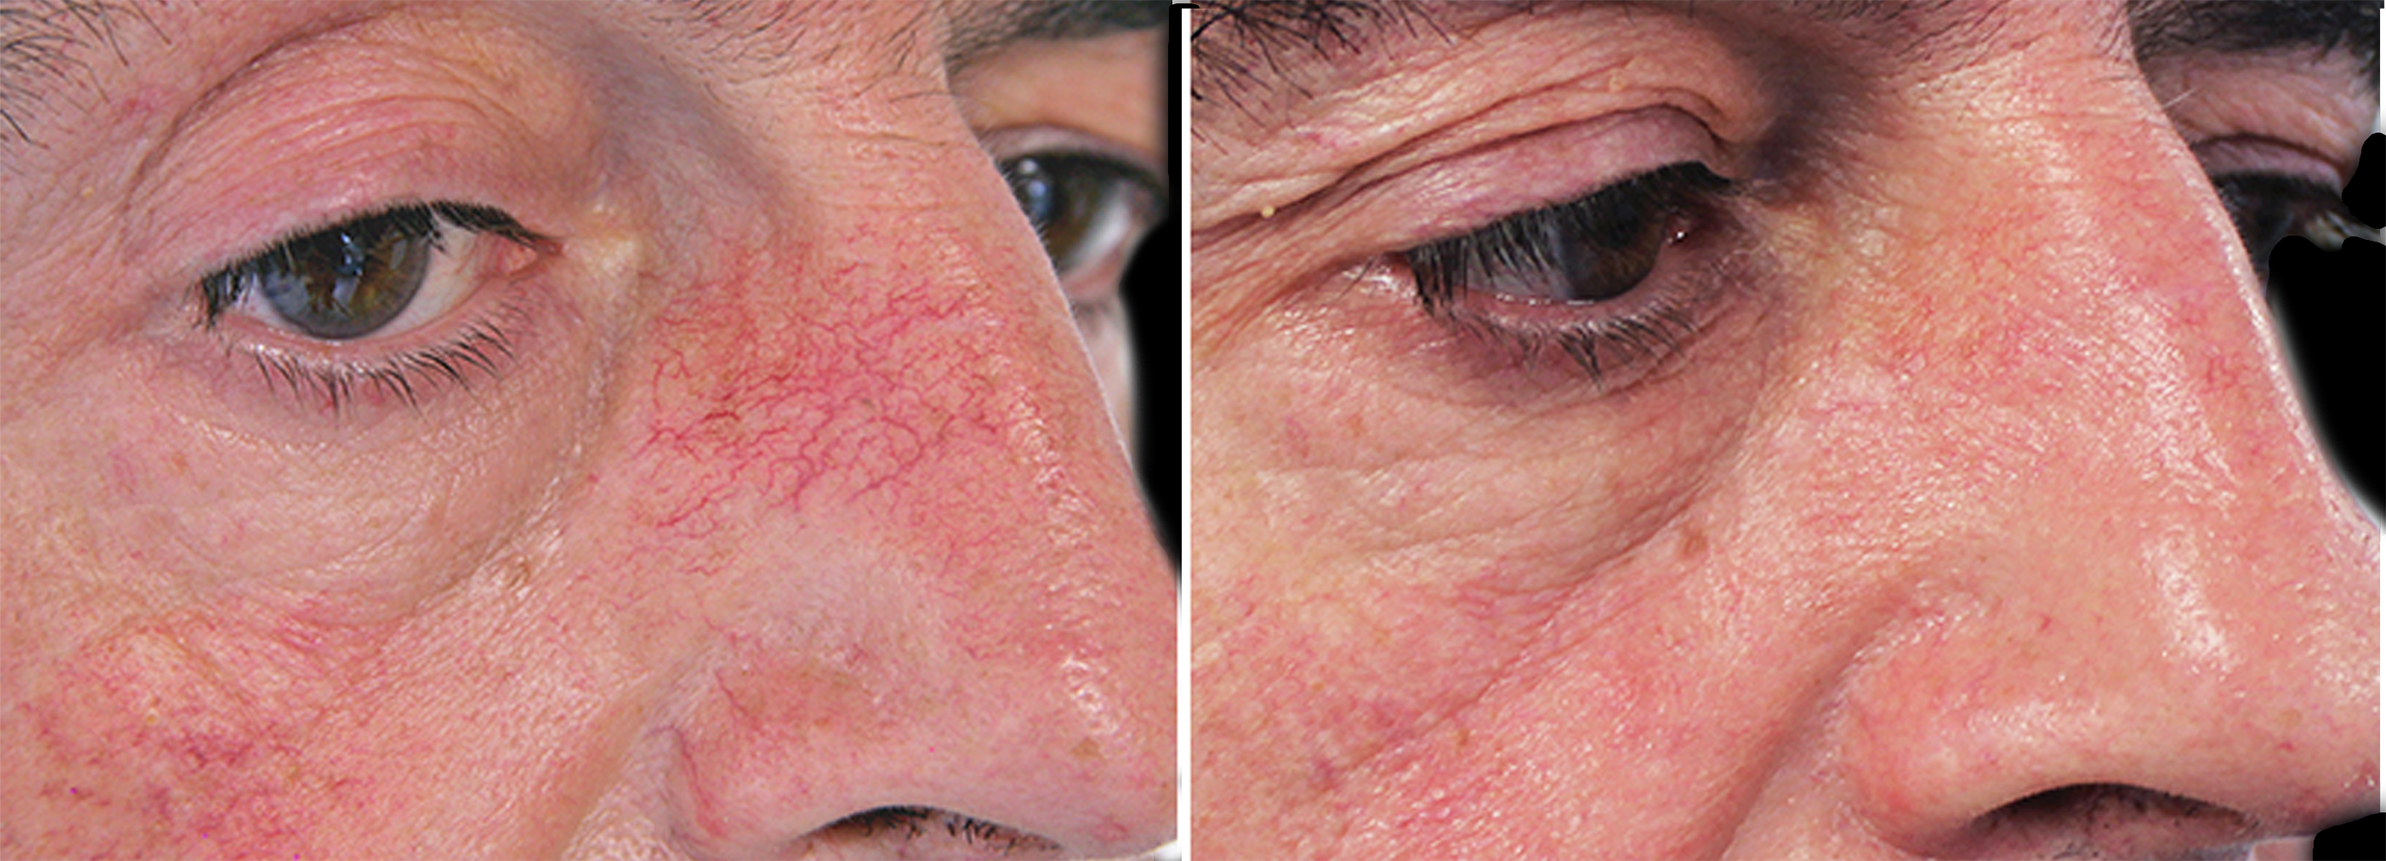 Long Island facial vein removal before after